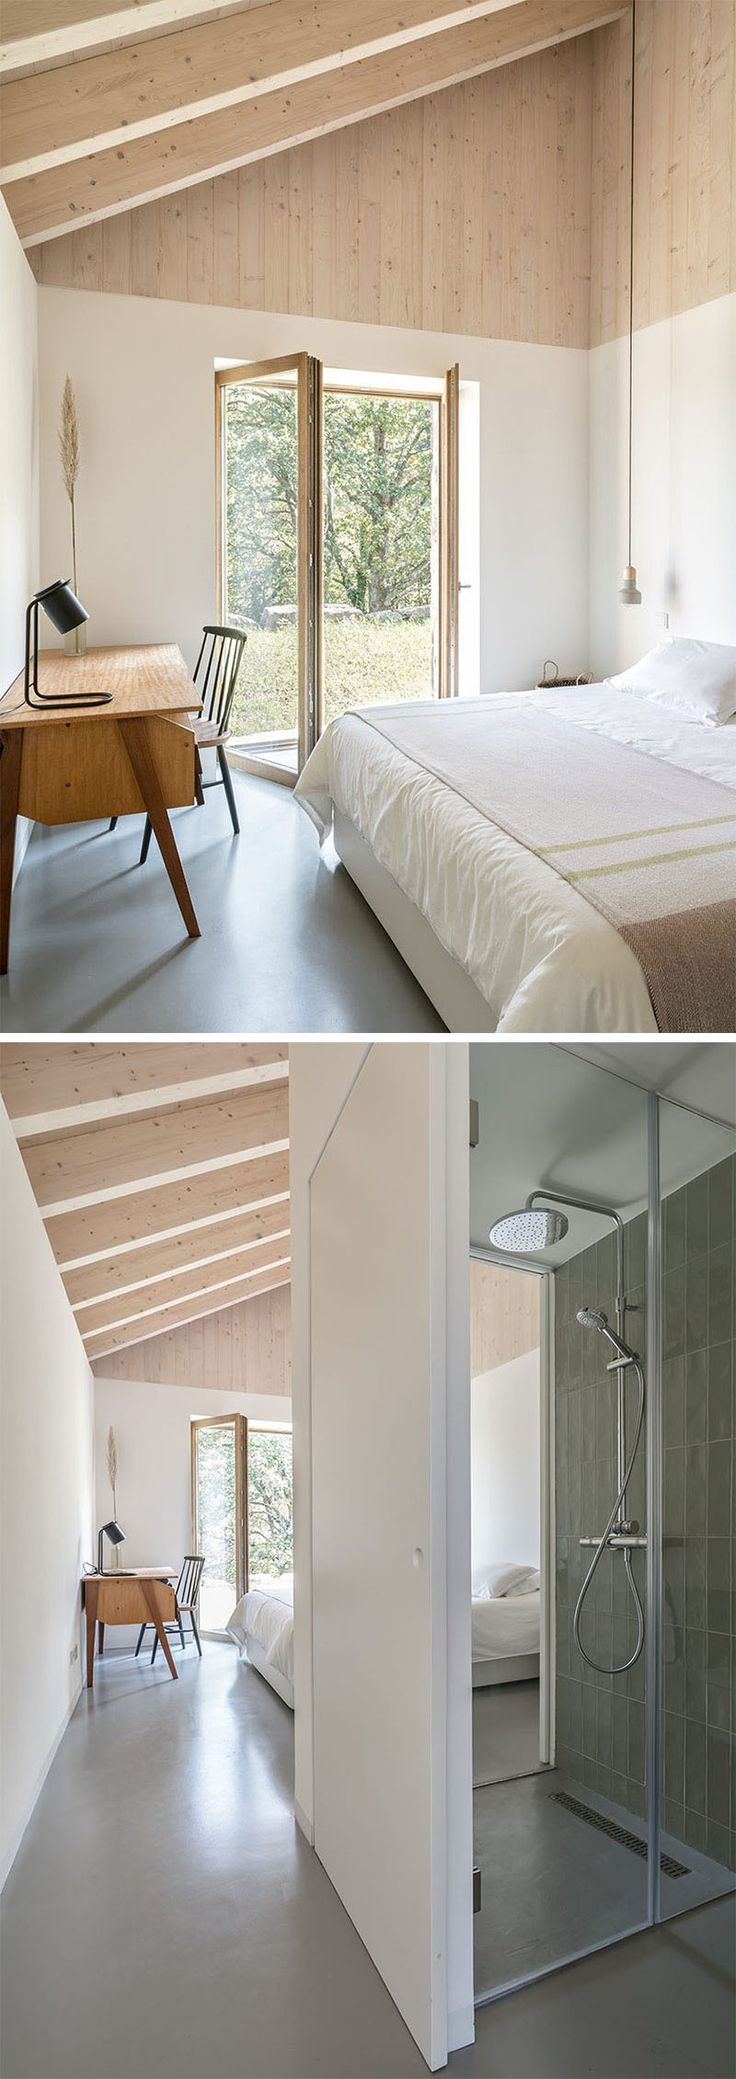 28 best ceiling images on pinterest ceiling arquitetura and home